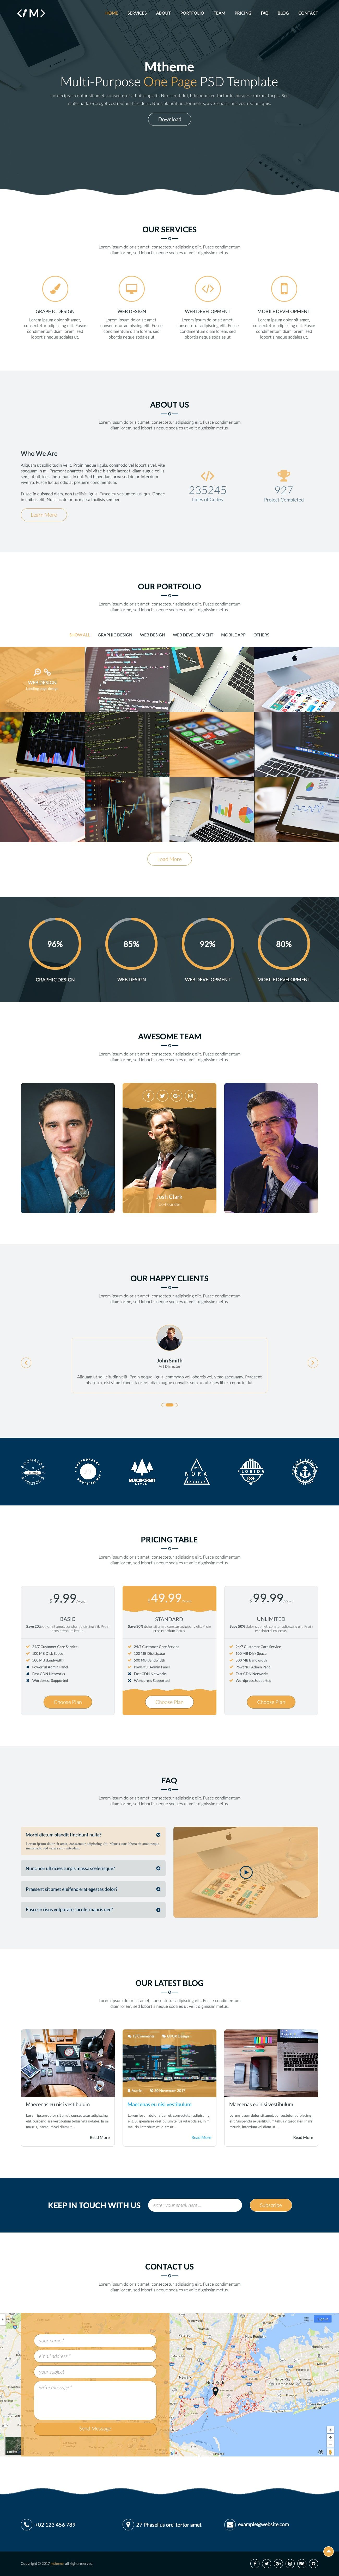 MTheme - Multi-Purpose One Page PSD Template Screenshot 14